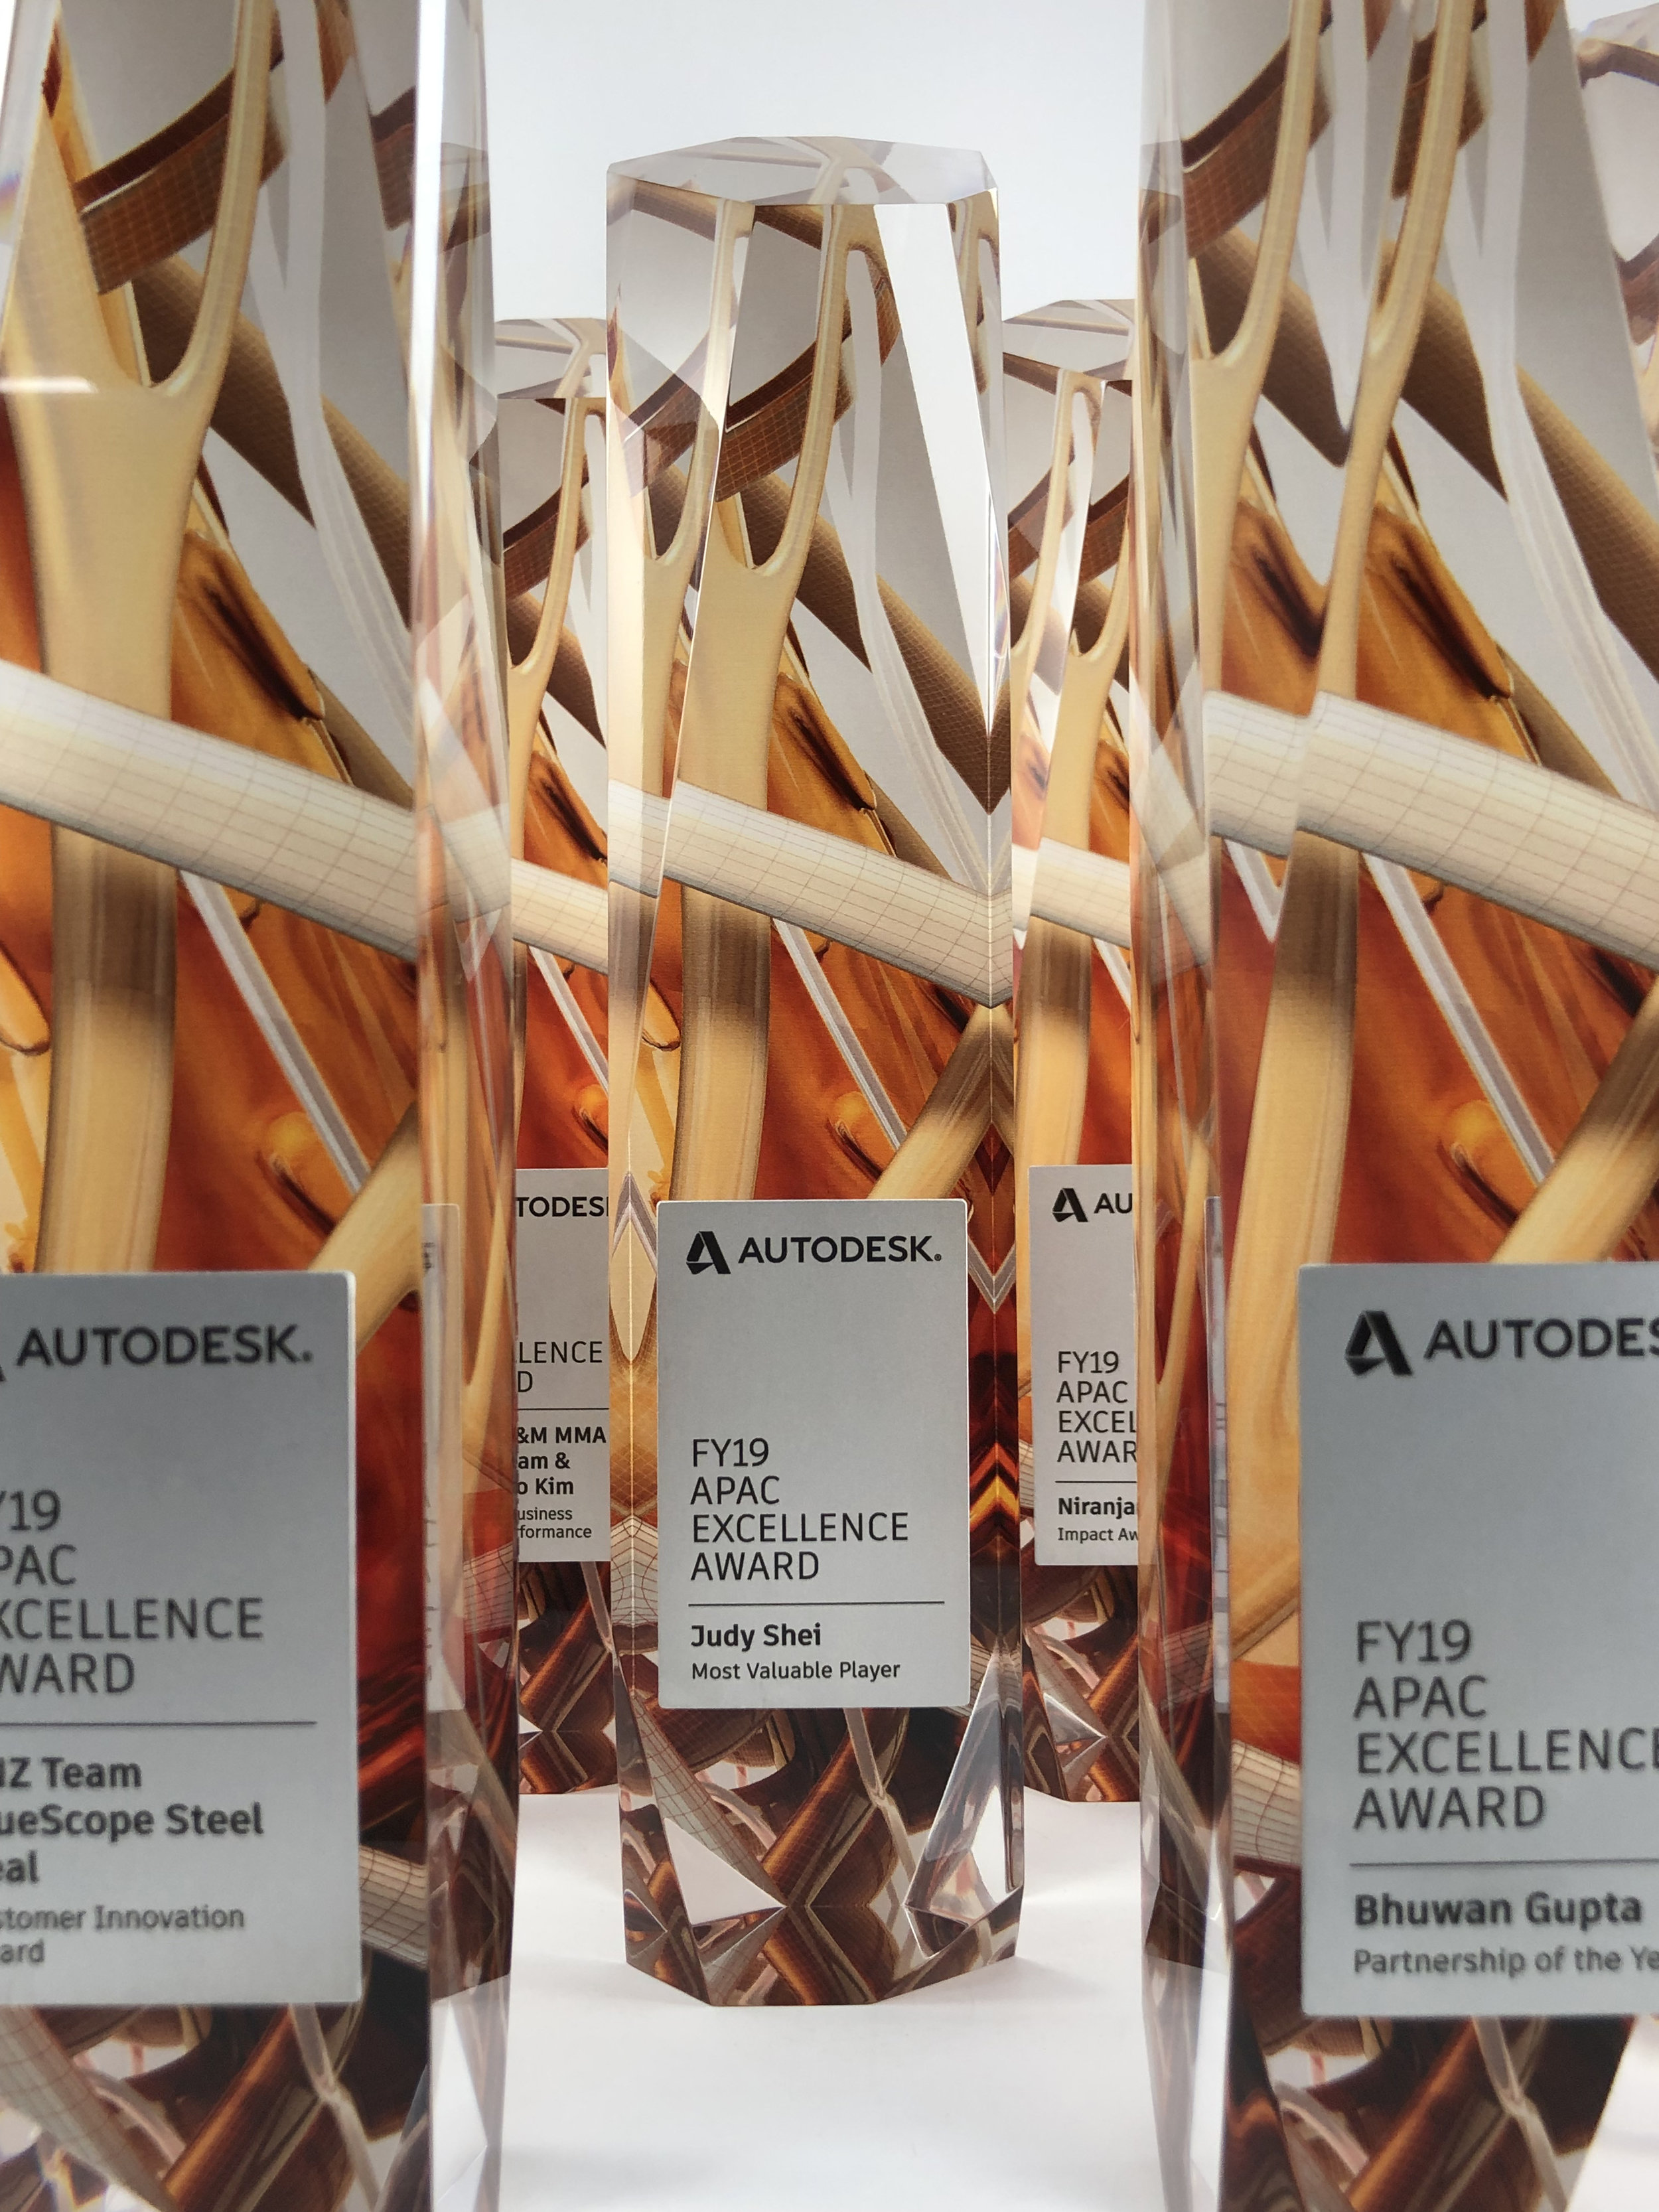 autodesk-apac-excellence-awards-acrylic-metal-graphic-art-print-trophy-03.jpg